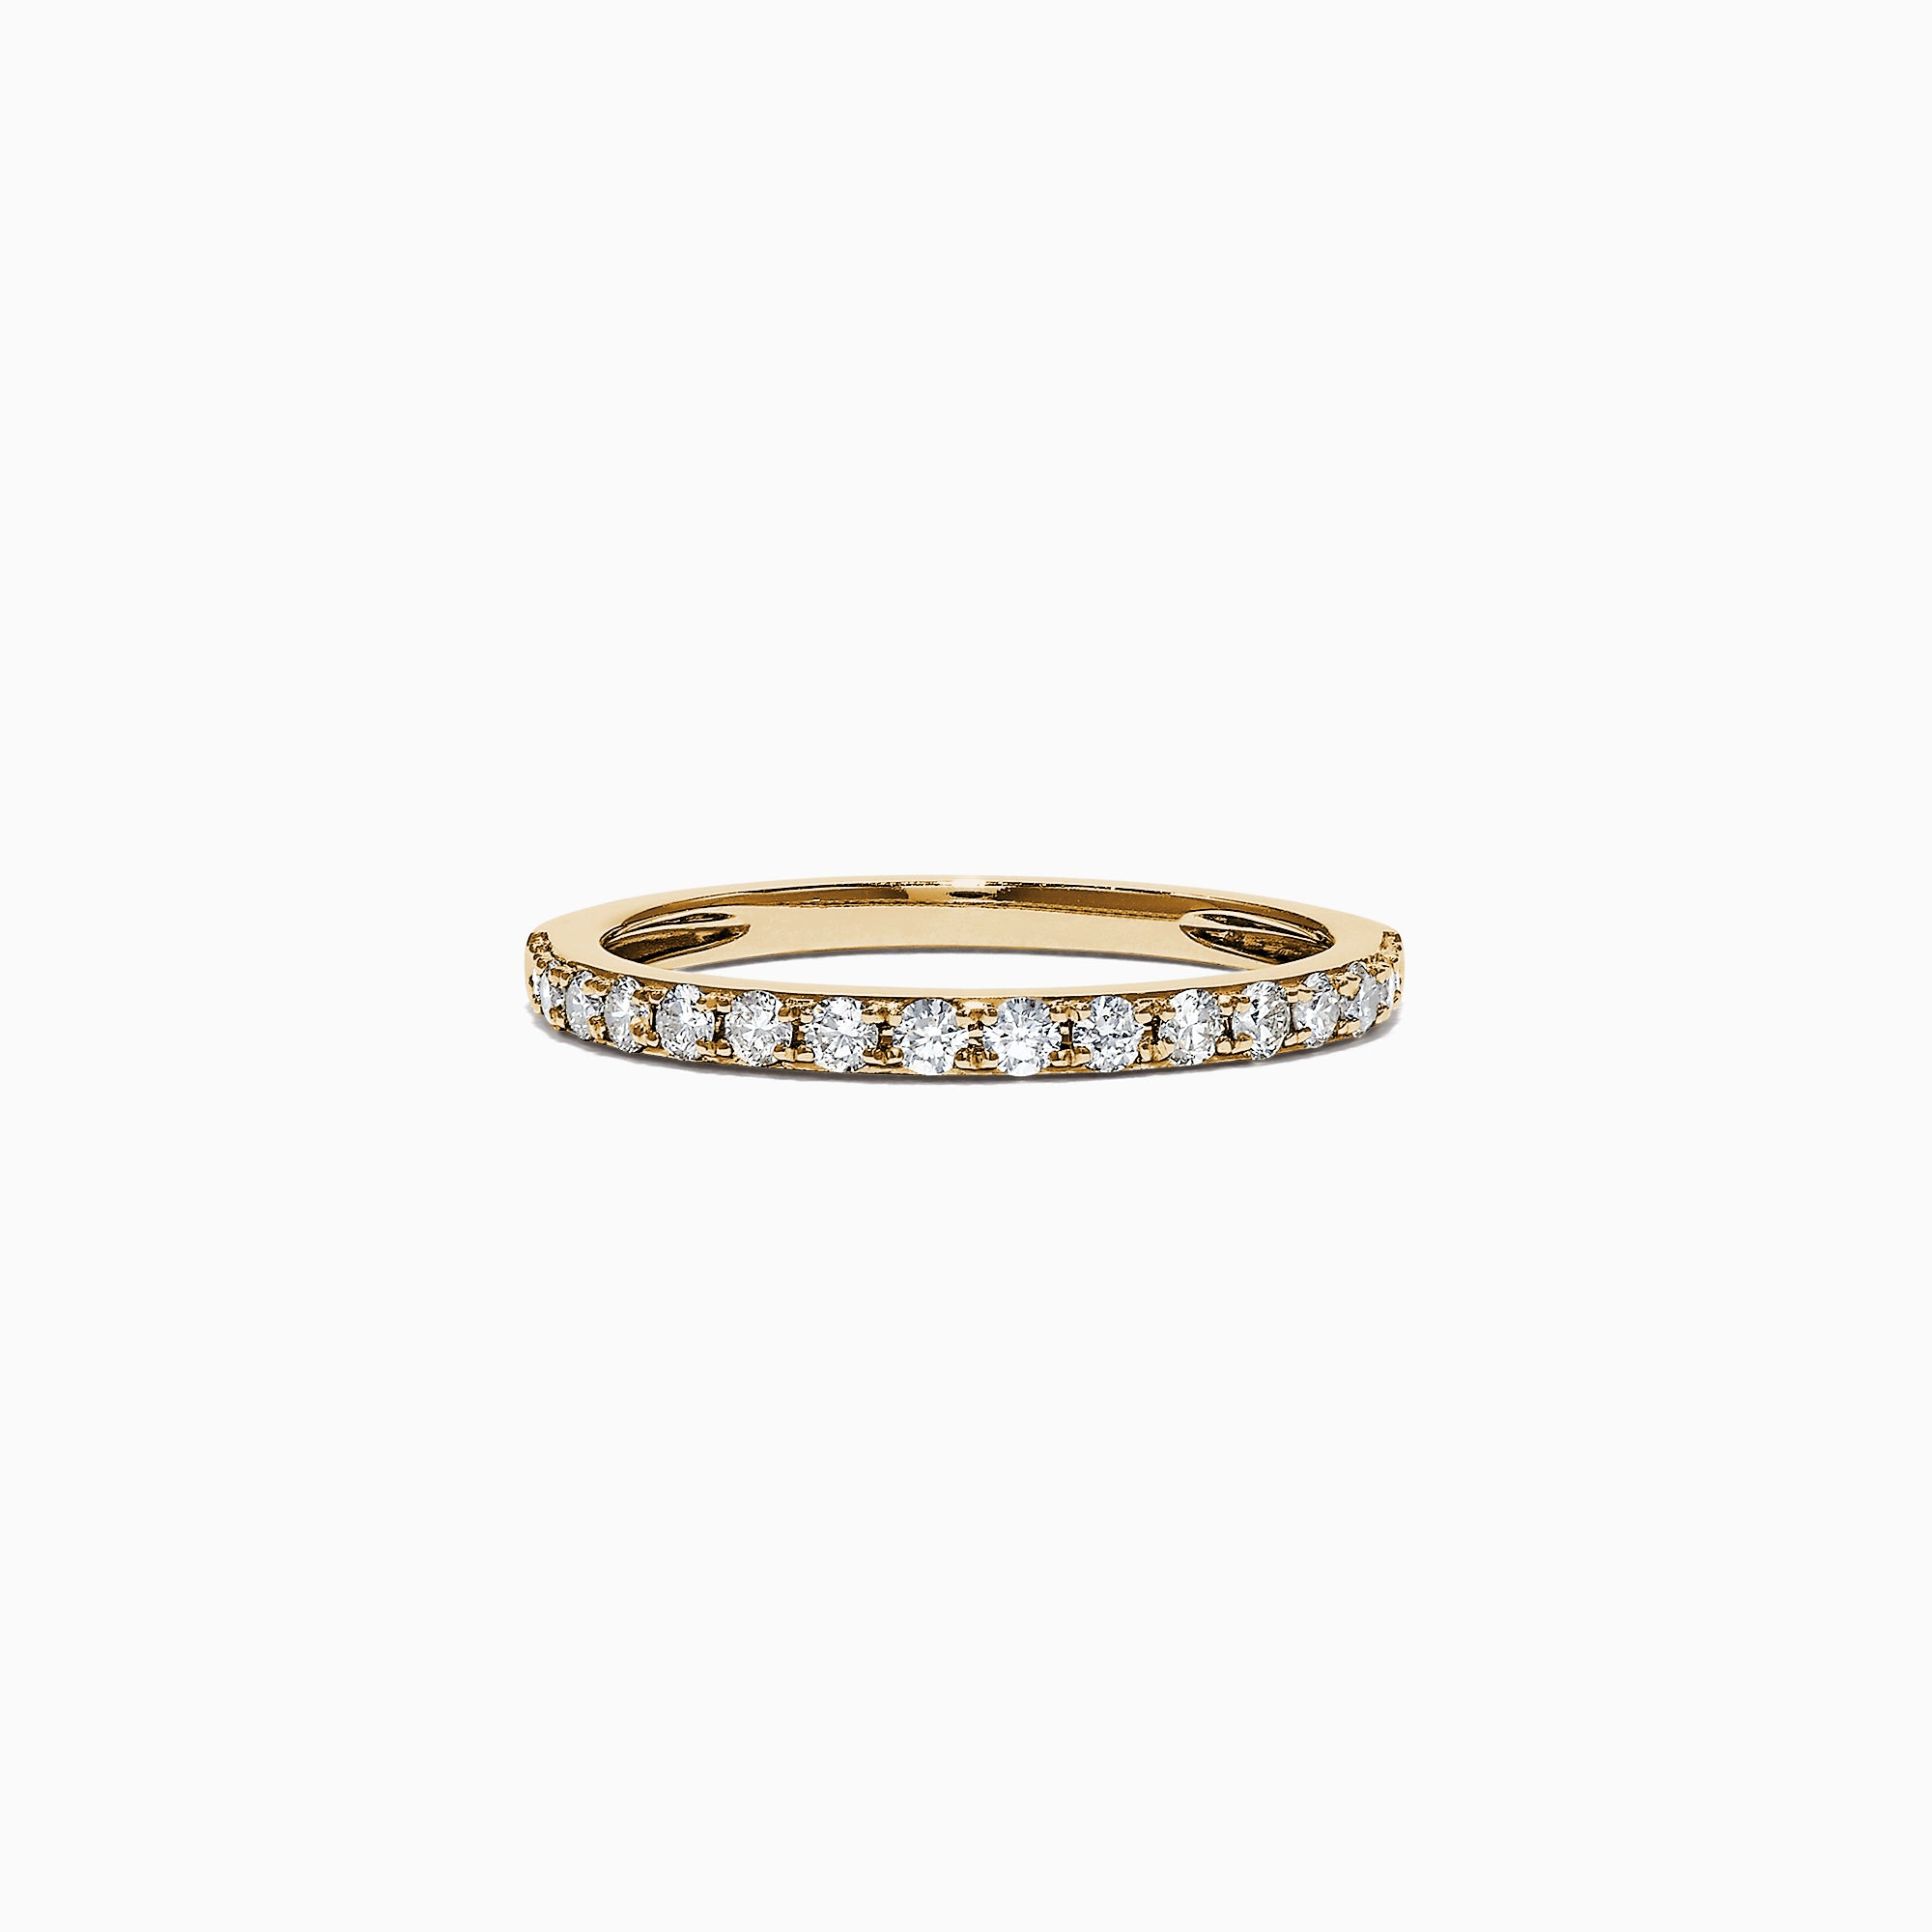 Effy D'Oro 14K Yellow Gold Diamond Band Ring, 0.34 TCW